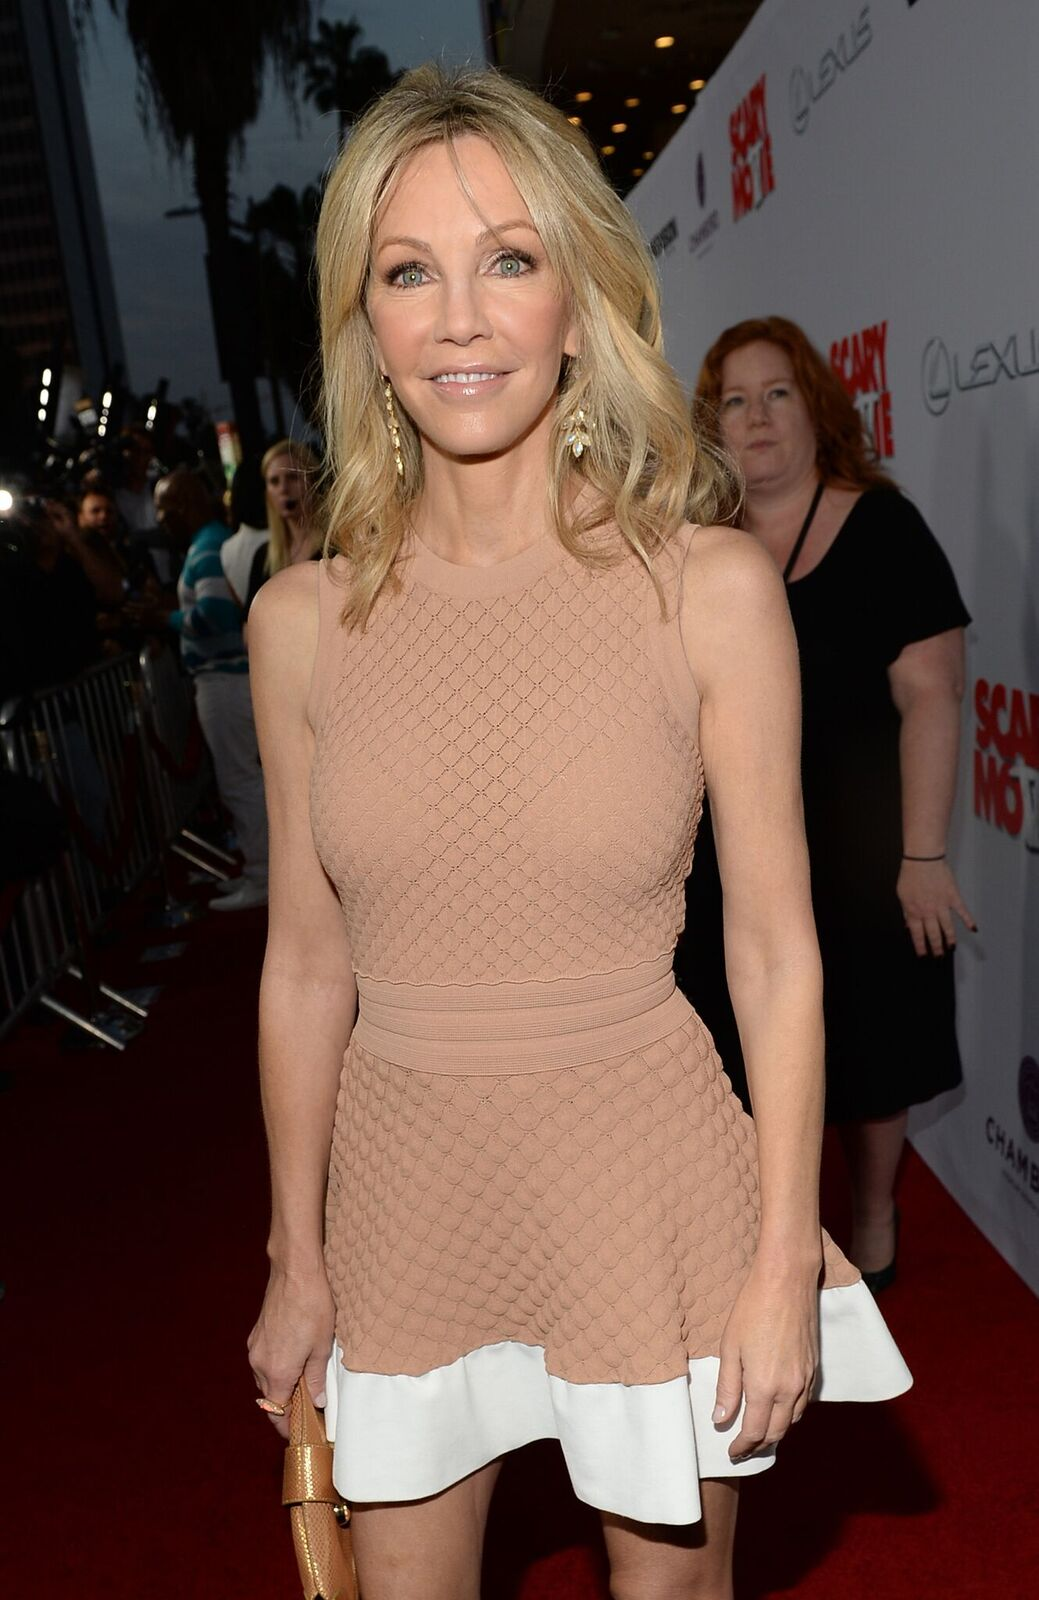 """Heather Locklear at the premiere of """"Scary Movie 5"""" on April 11, 2013 